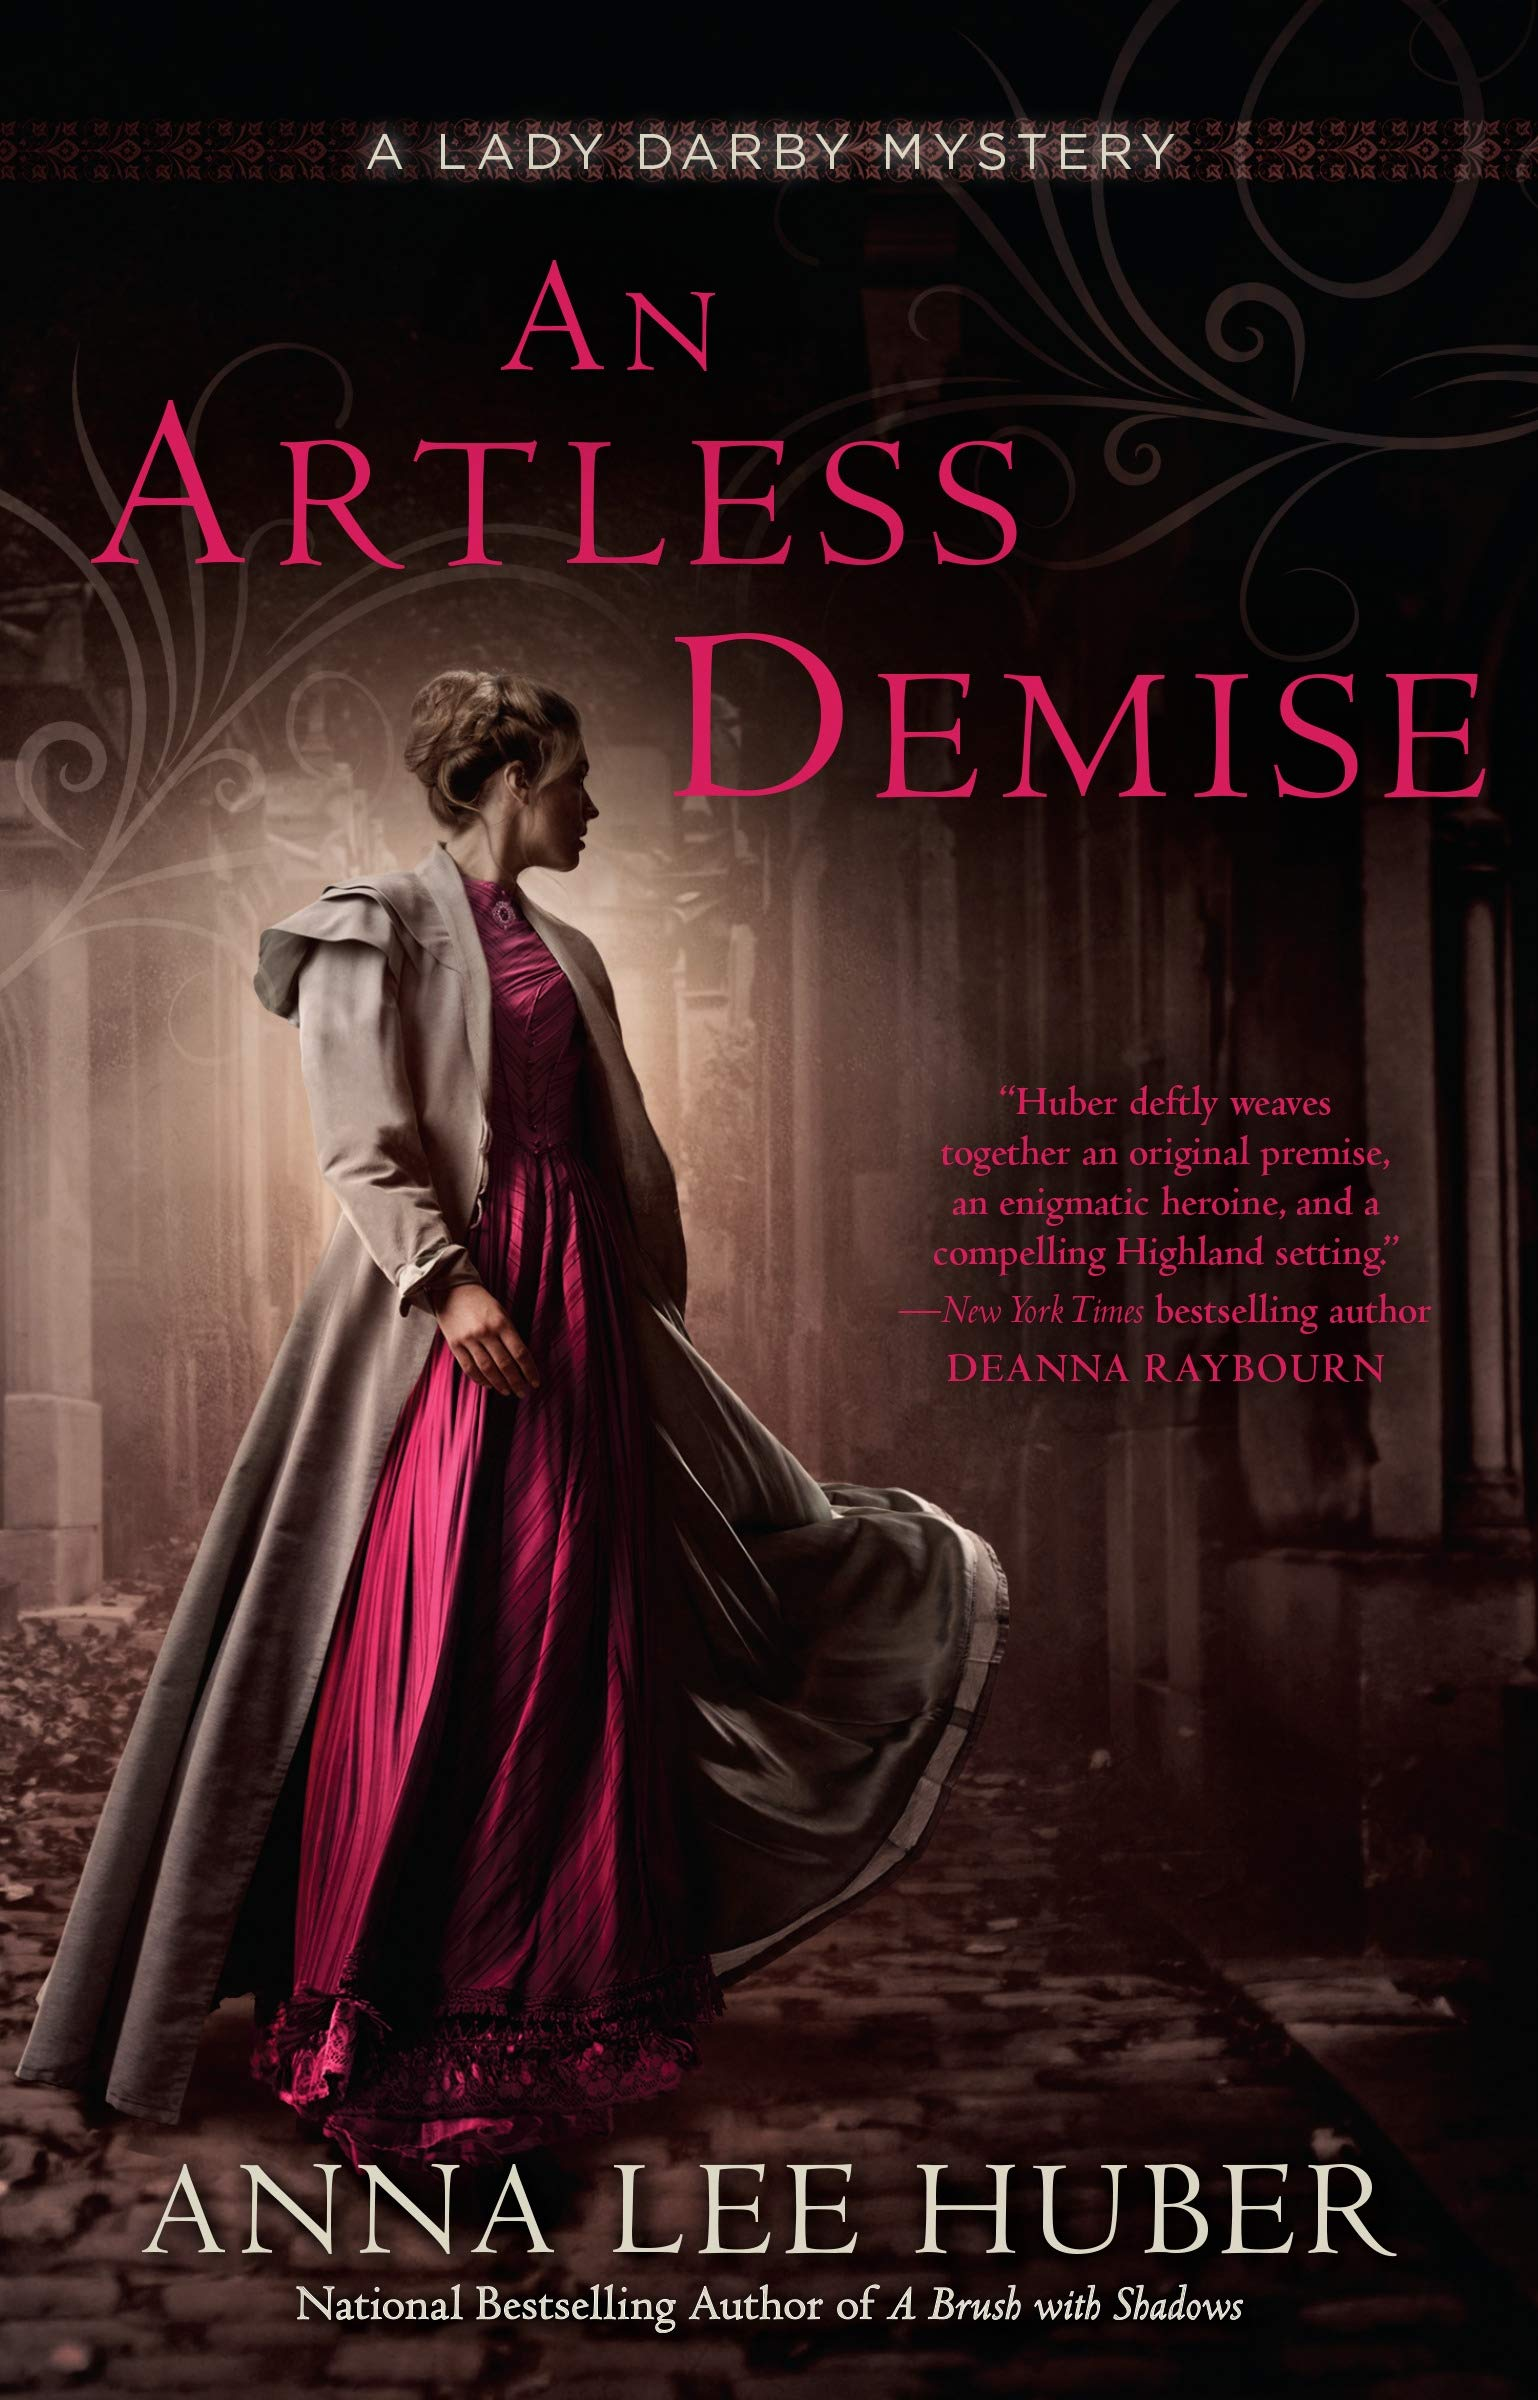 AN ARTLESS DEMISE by Anna Lee Huber